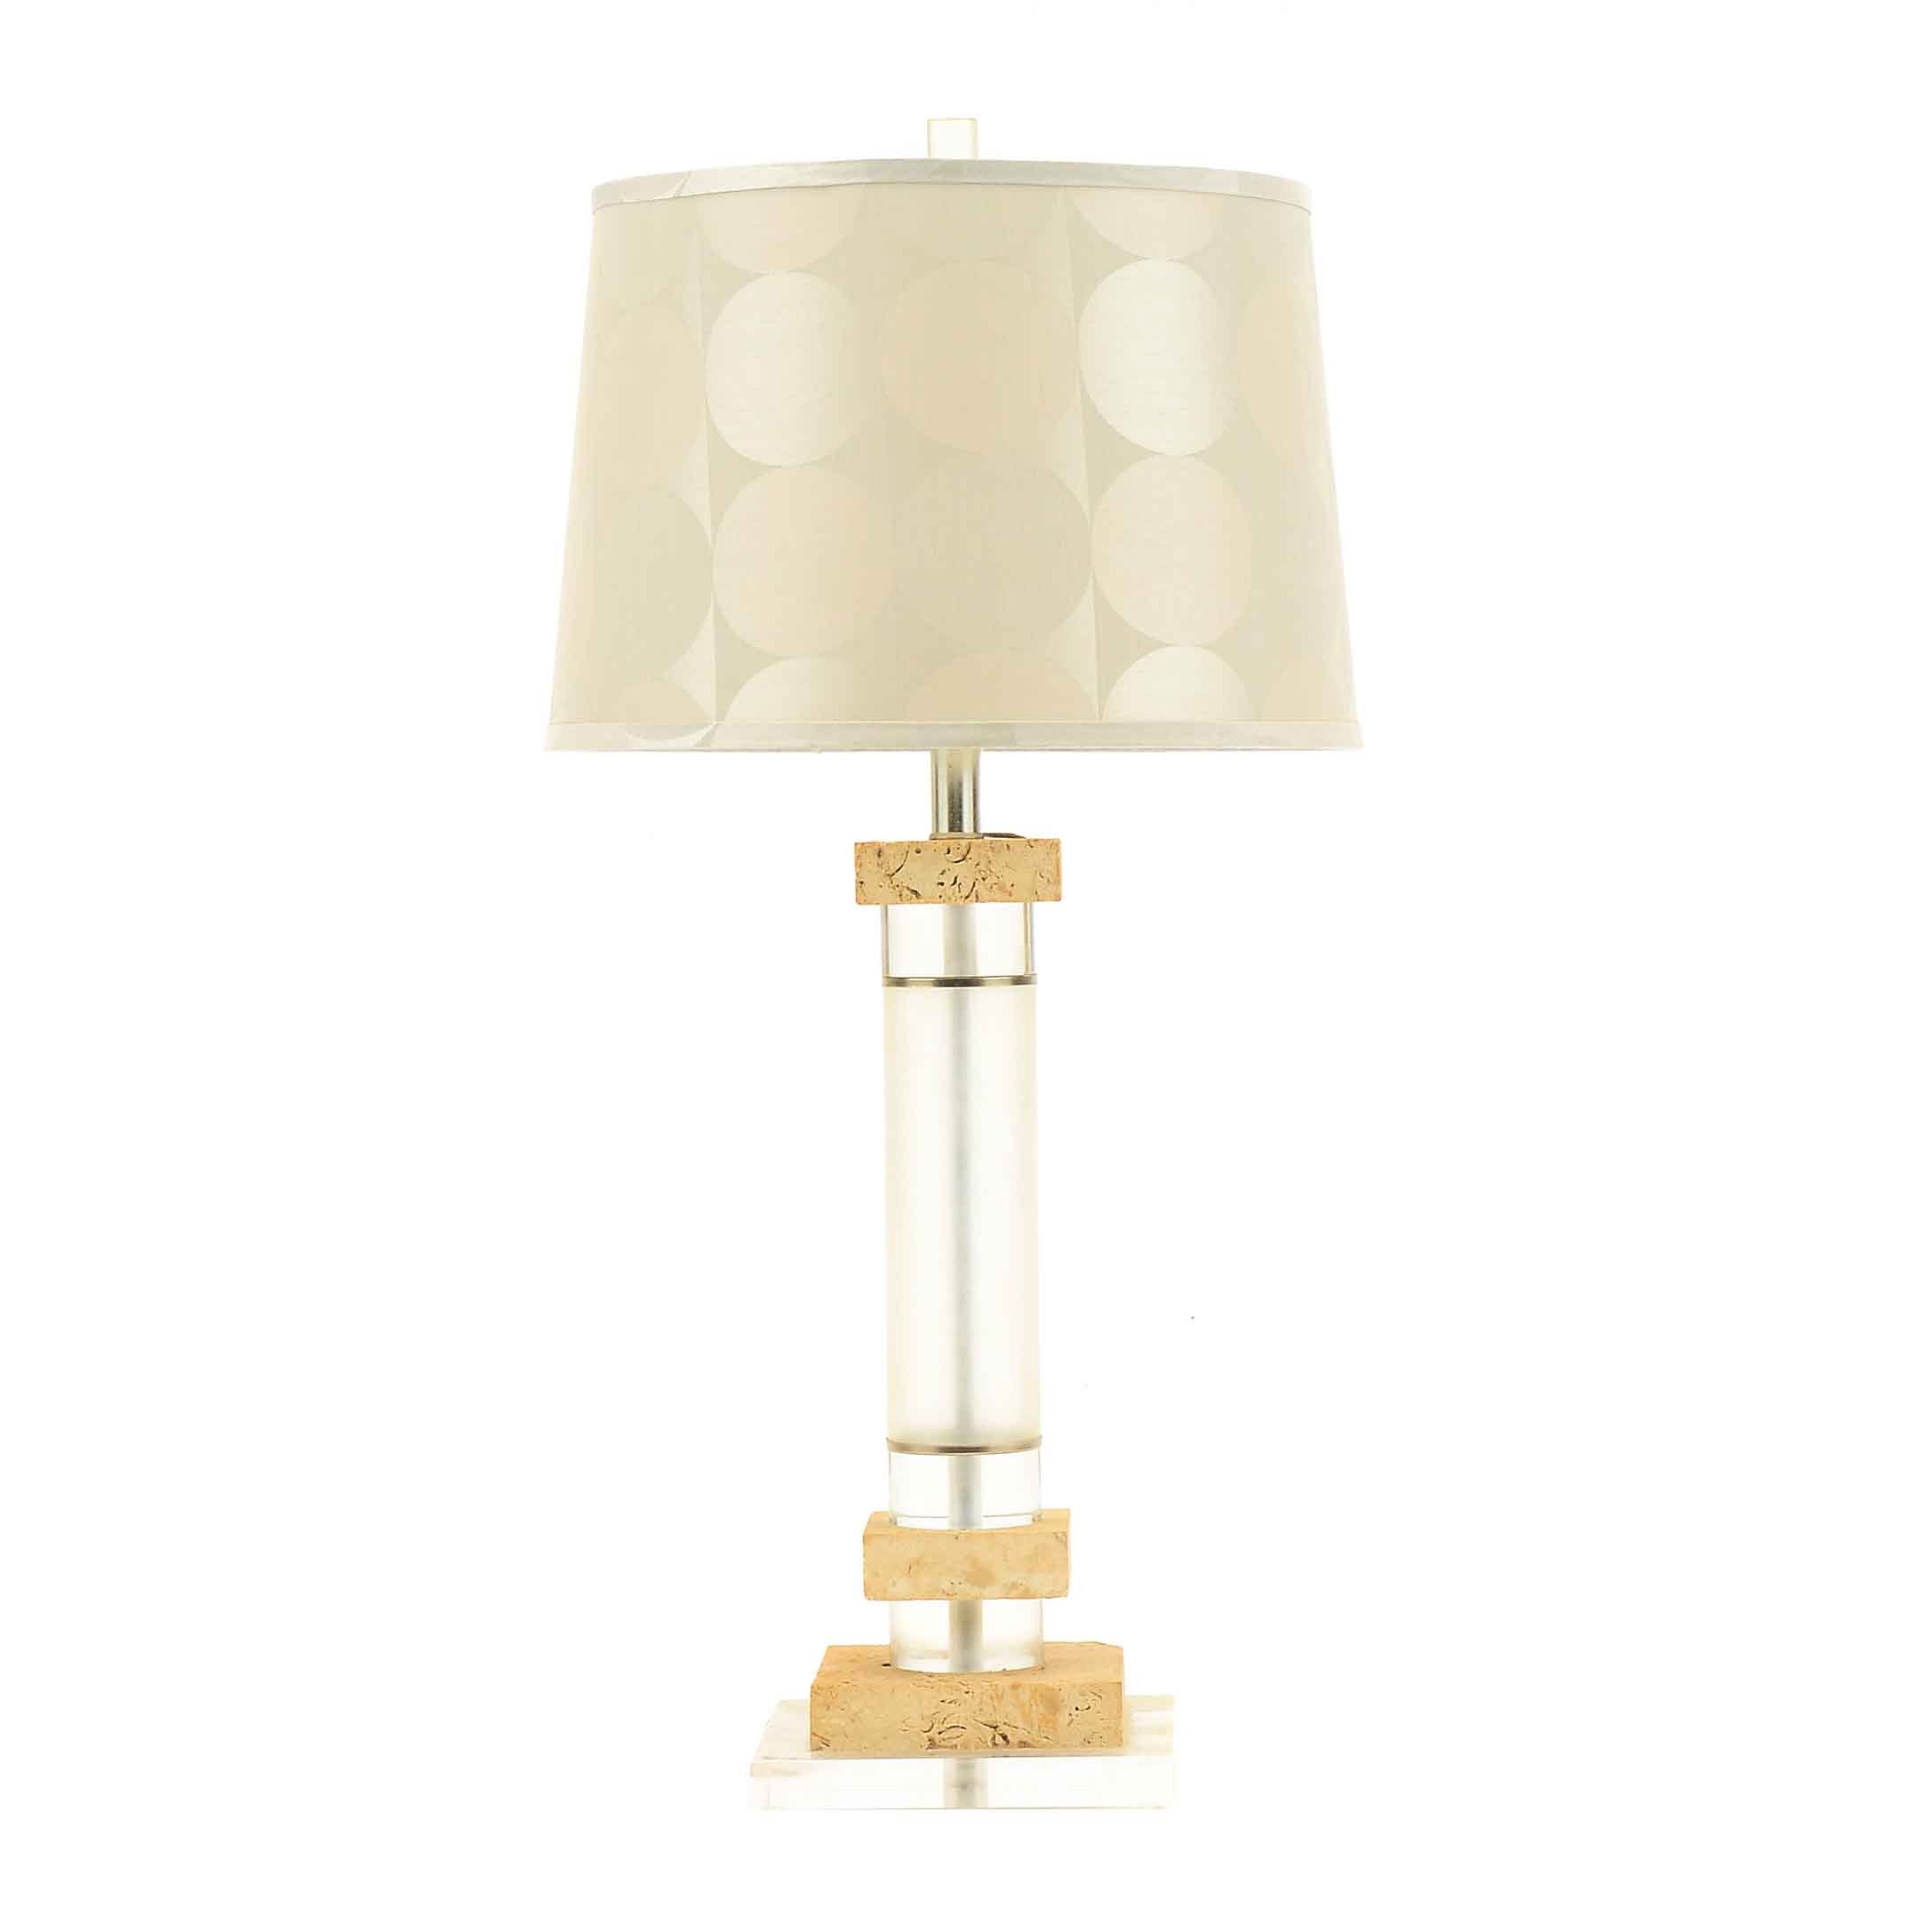 Mid Century Modern Acrylic and Travertine Table Lamp